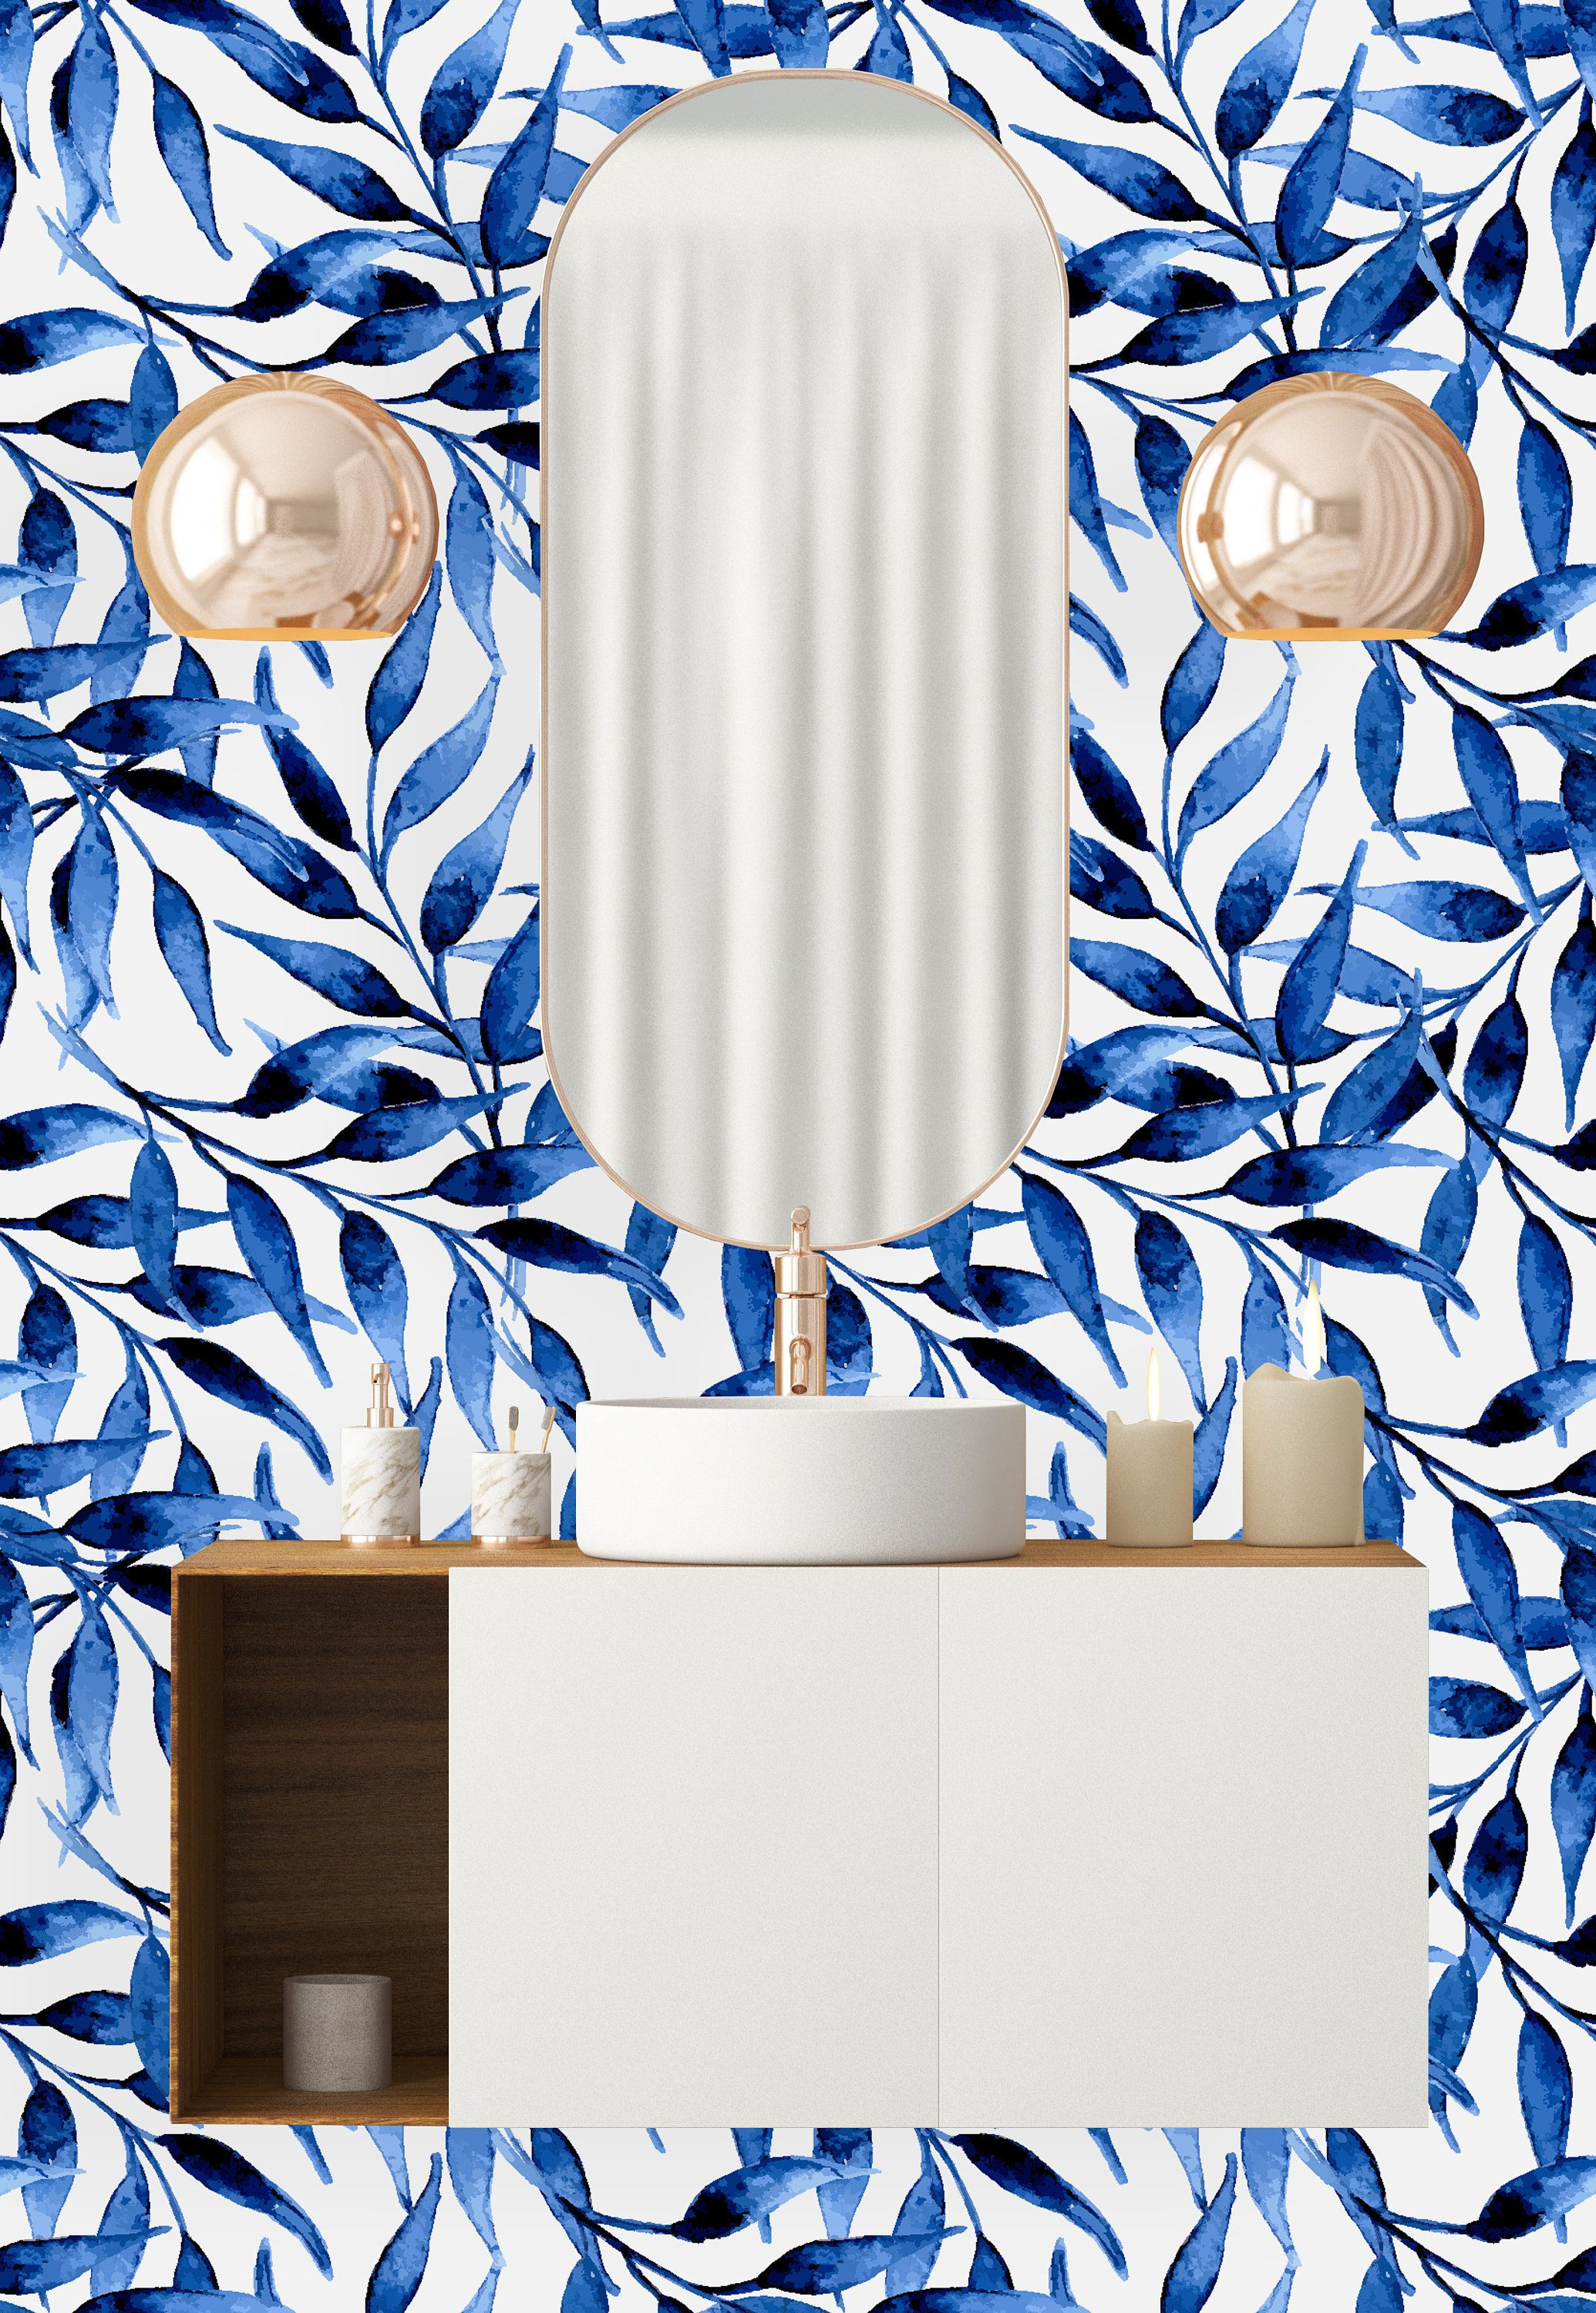 Blue Willow Leaves Removable Wallpaper Peel And Stick Etsy Removable Wallpaper Willow Leaf Self Adhesive Wallpaper